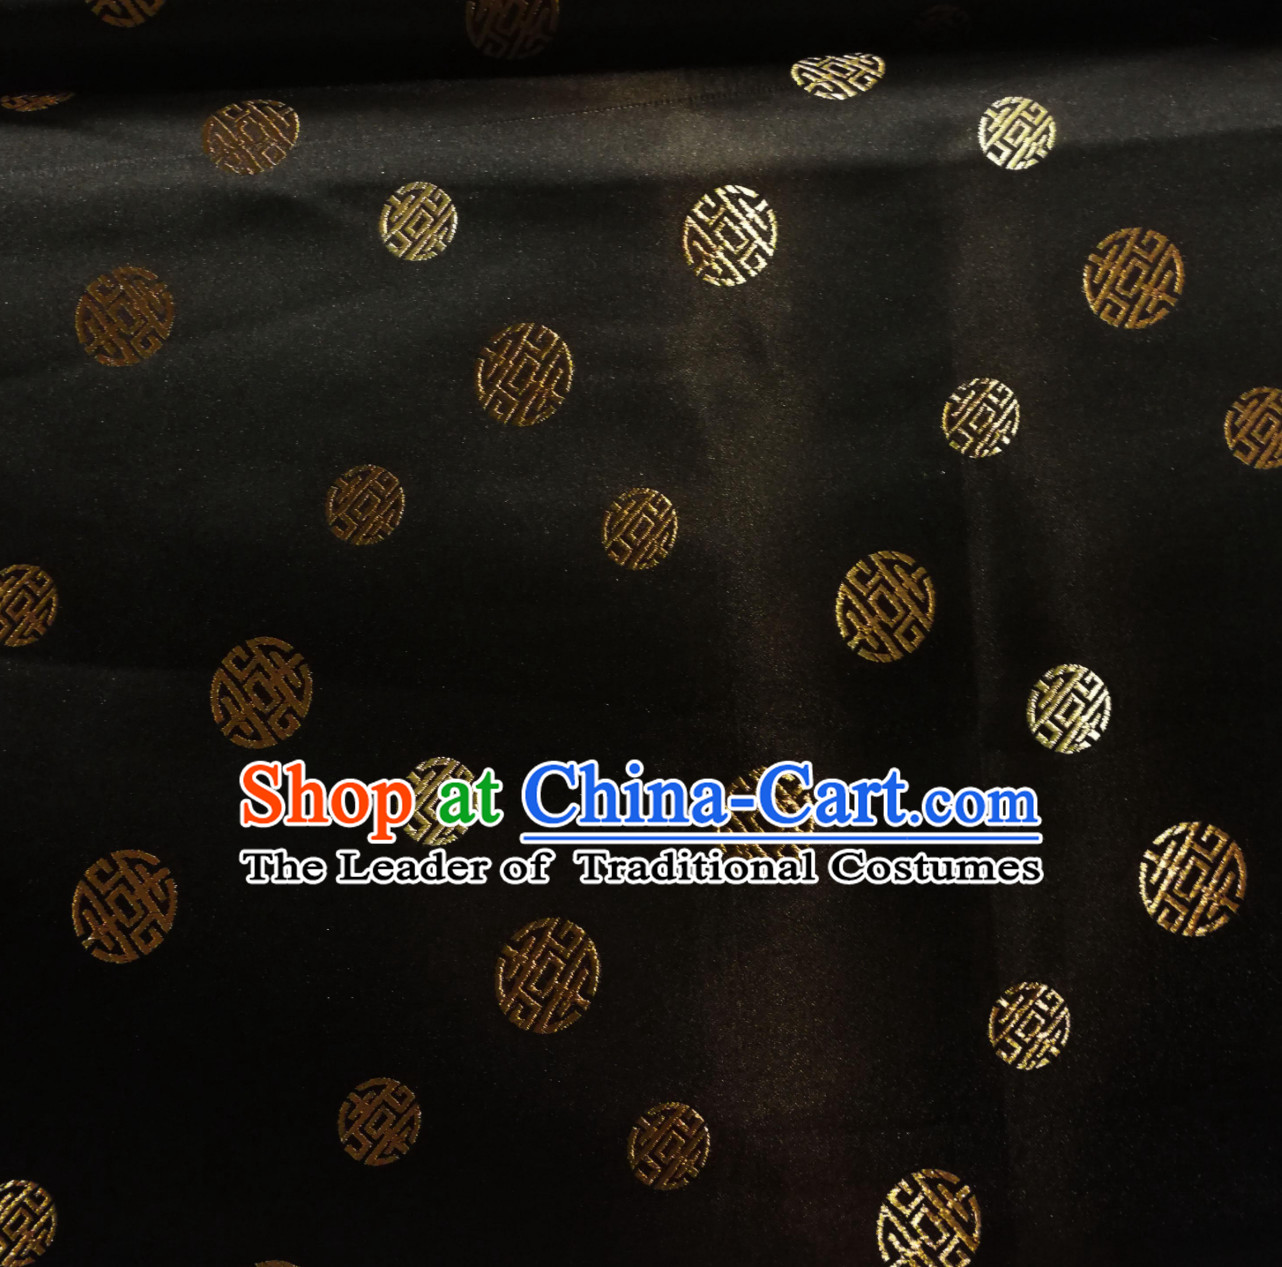 Black Color Chinese Royal Palace Style Traditional Pattern Design Brocade Fabric Silk Fabric Chinese Fabric Asian Material